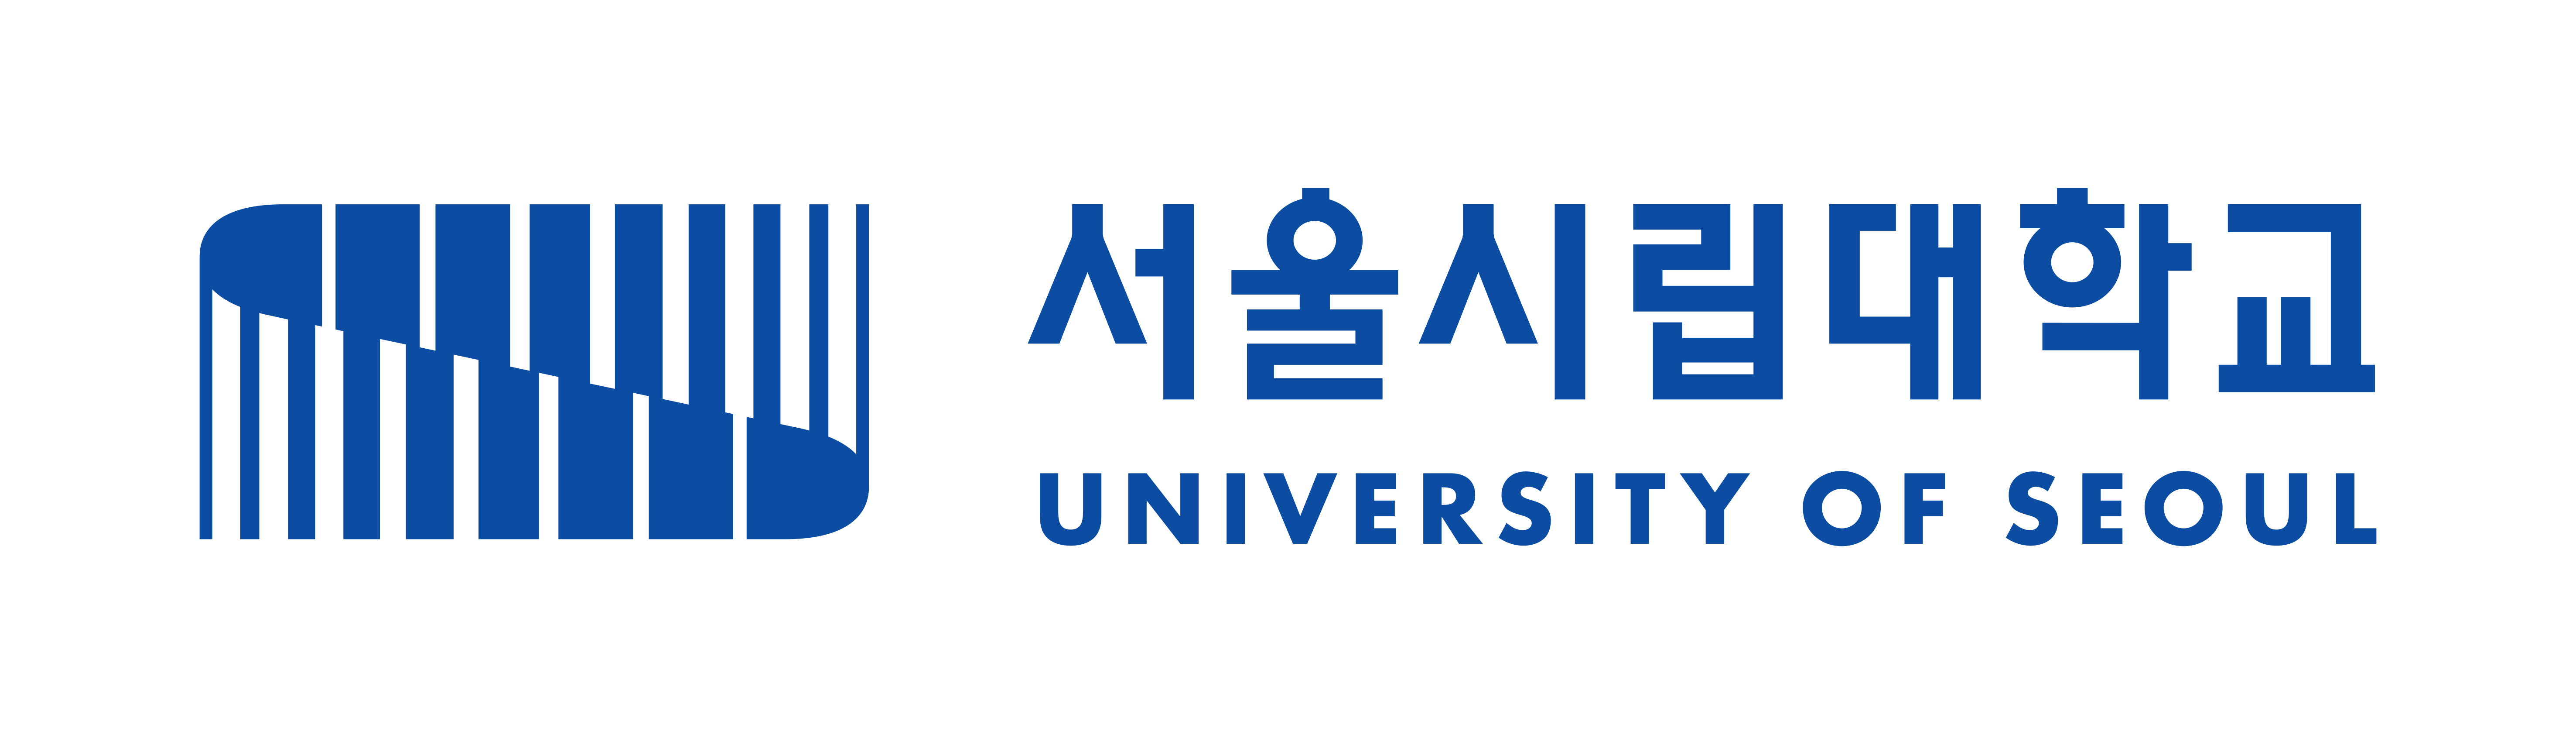 University of seoul International School of Urban Sciences